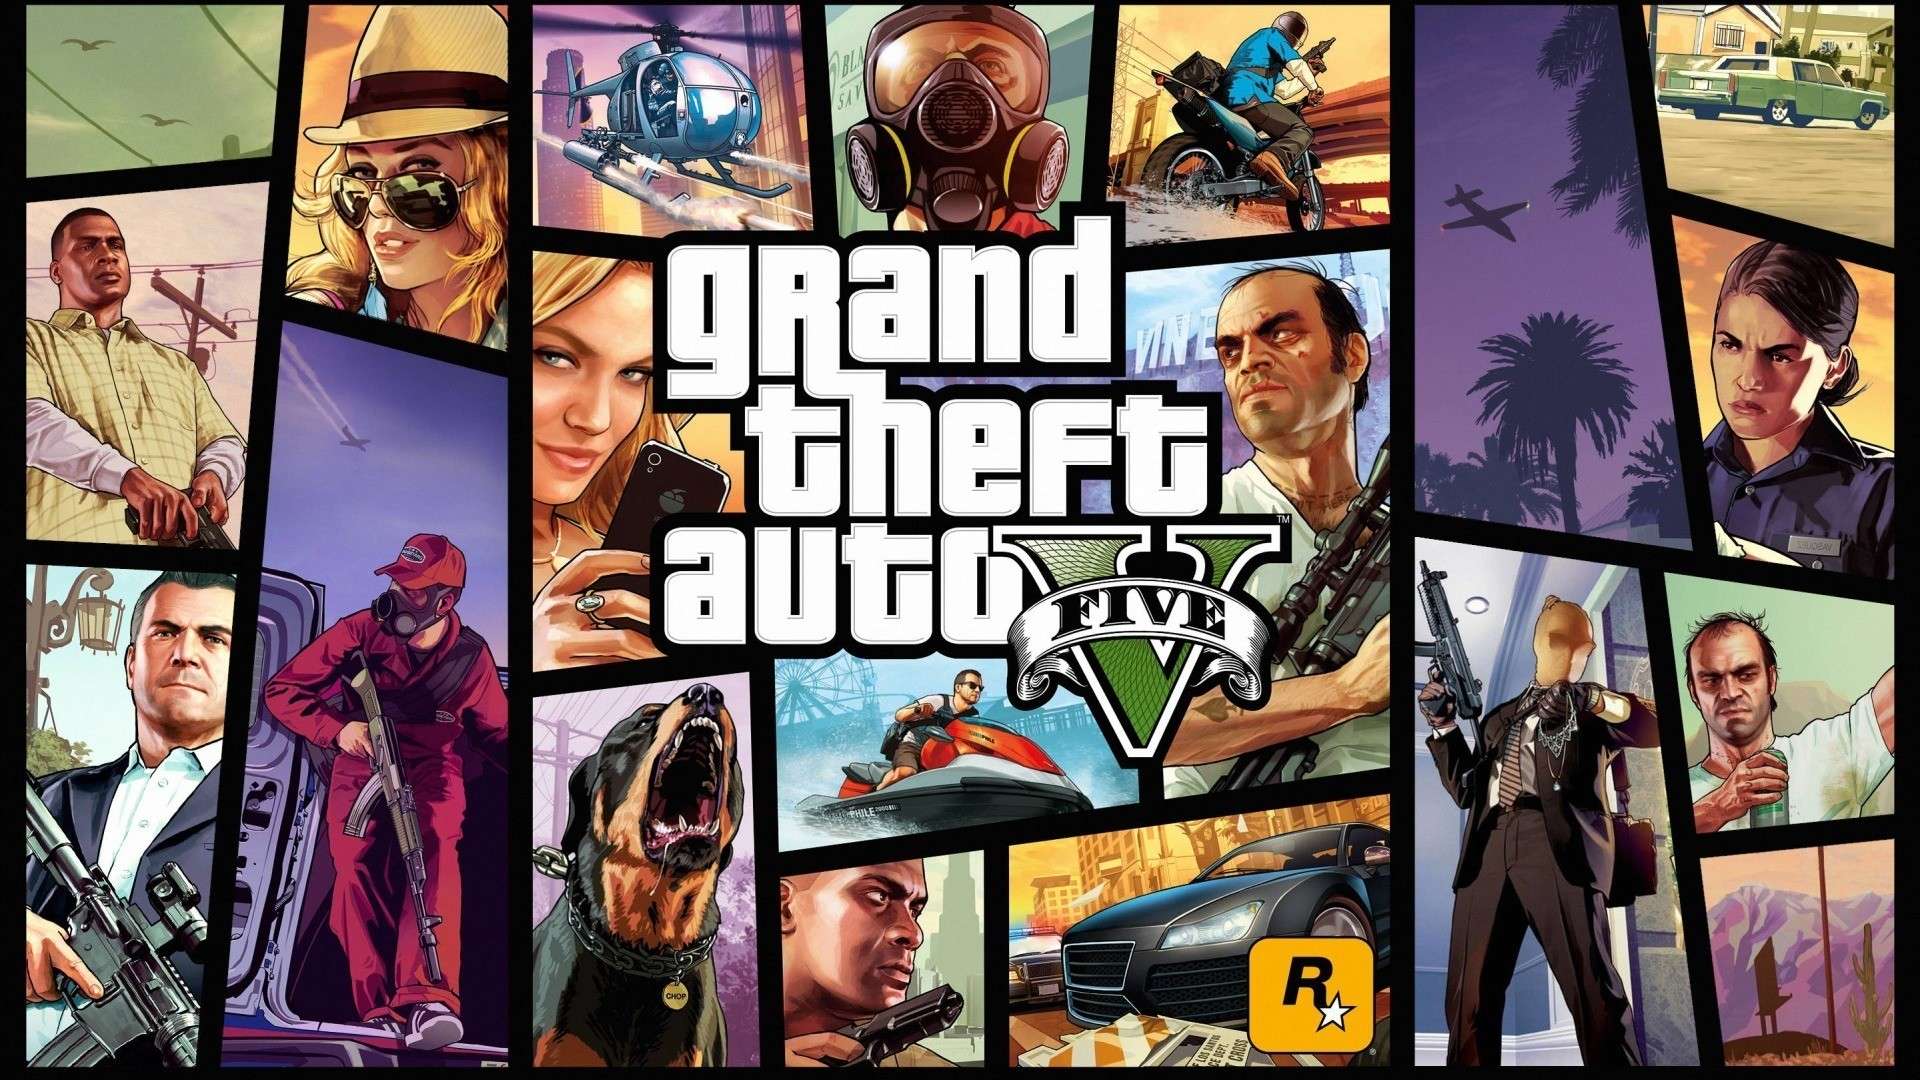 1920x1080 Grand Theft Auto V Wallpaper (Fanmade)HD 1980x1080 by .